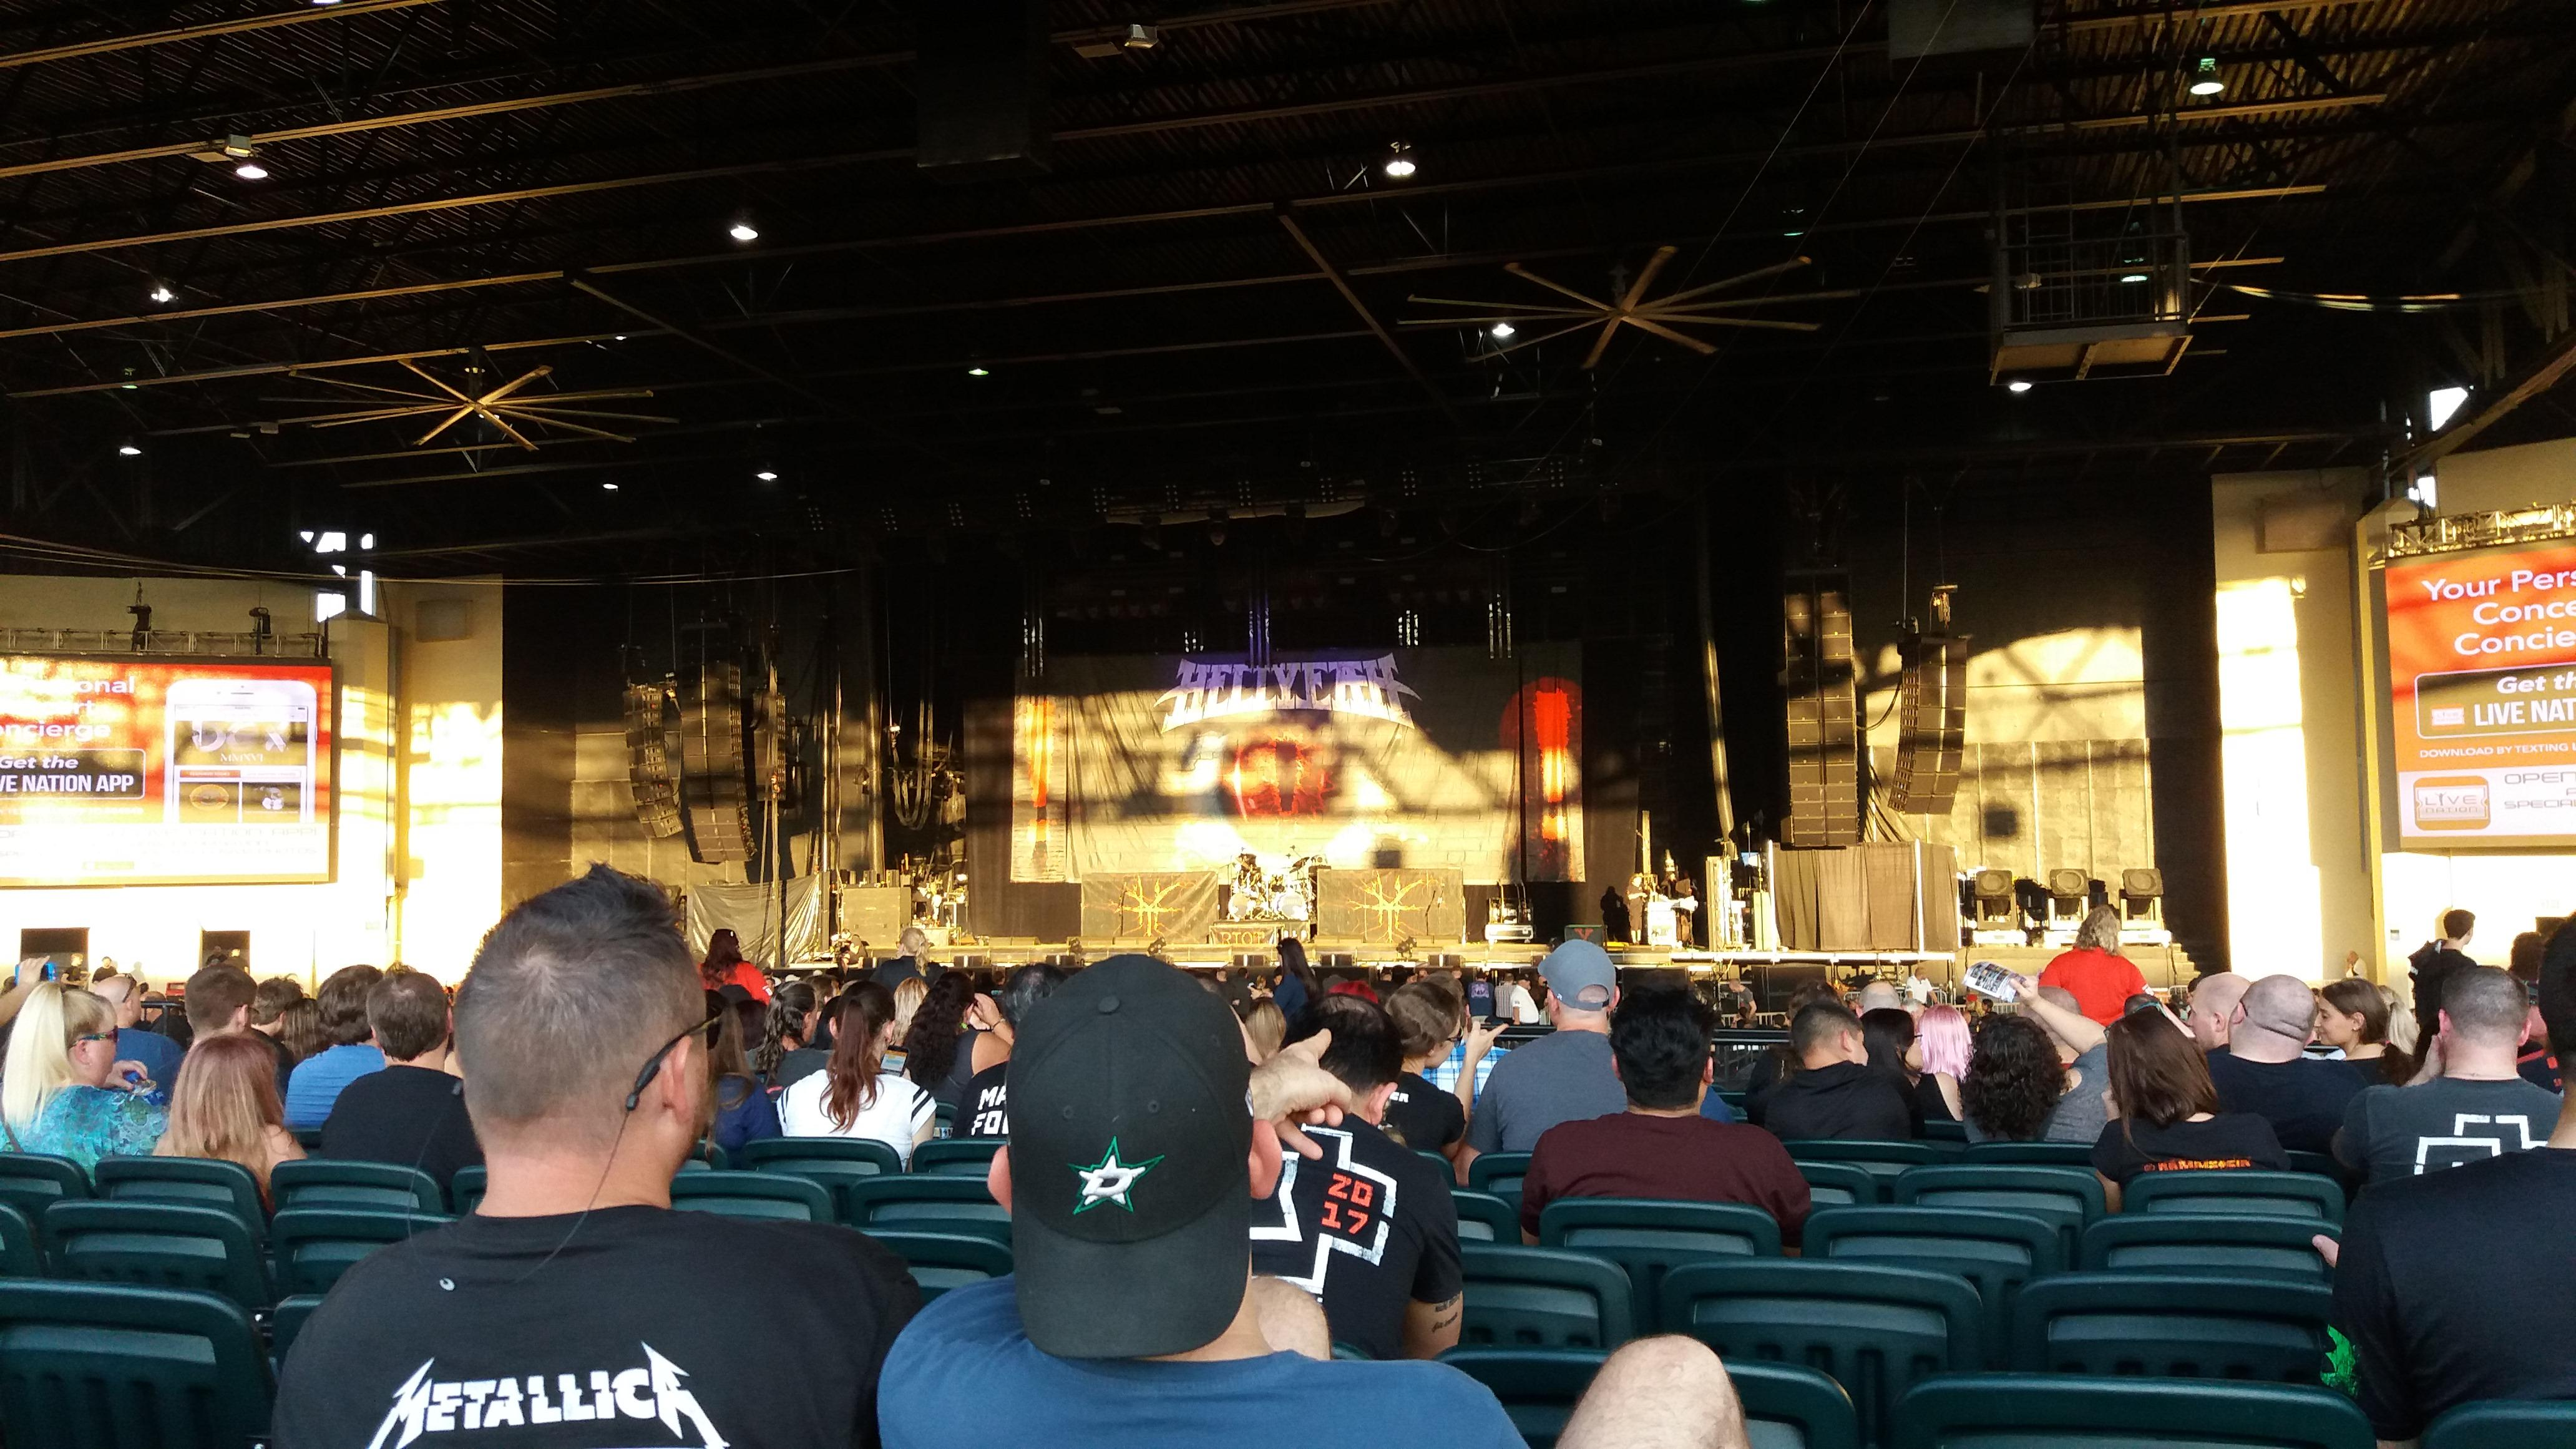 Dos Equis Pavilion, section 202, row V, seat 13 - RAMMSTEIN